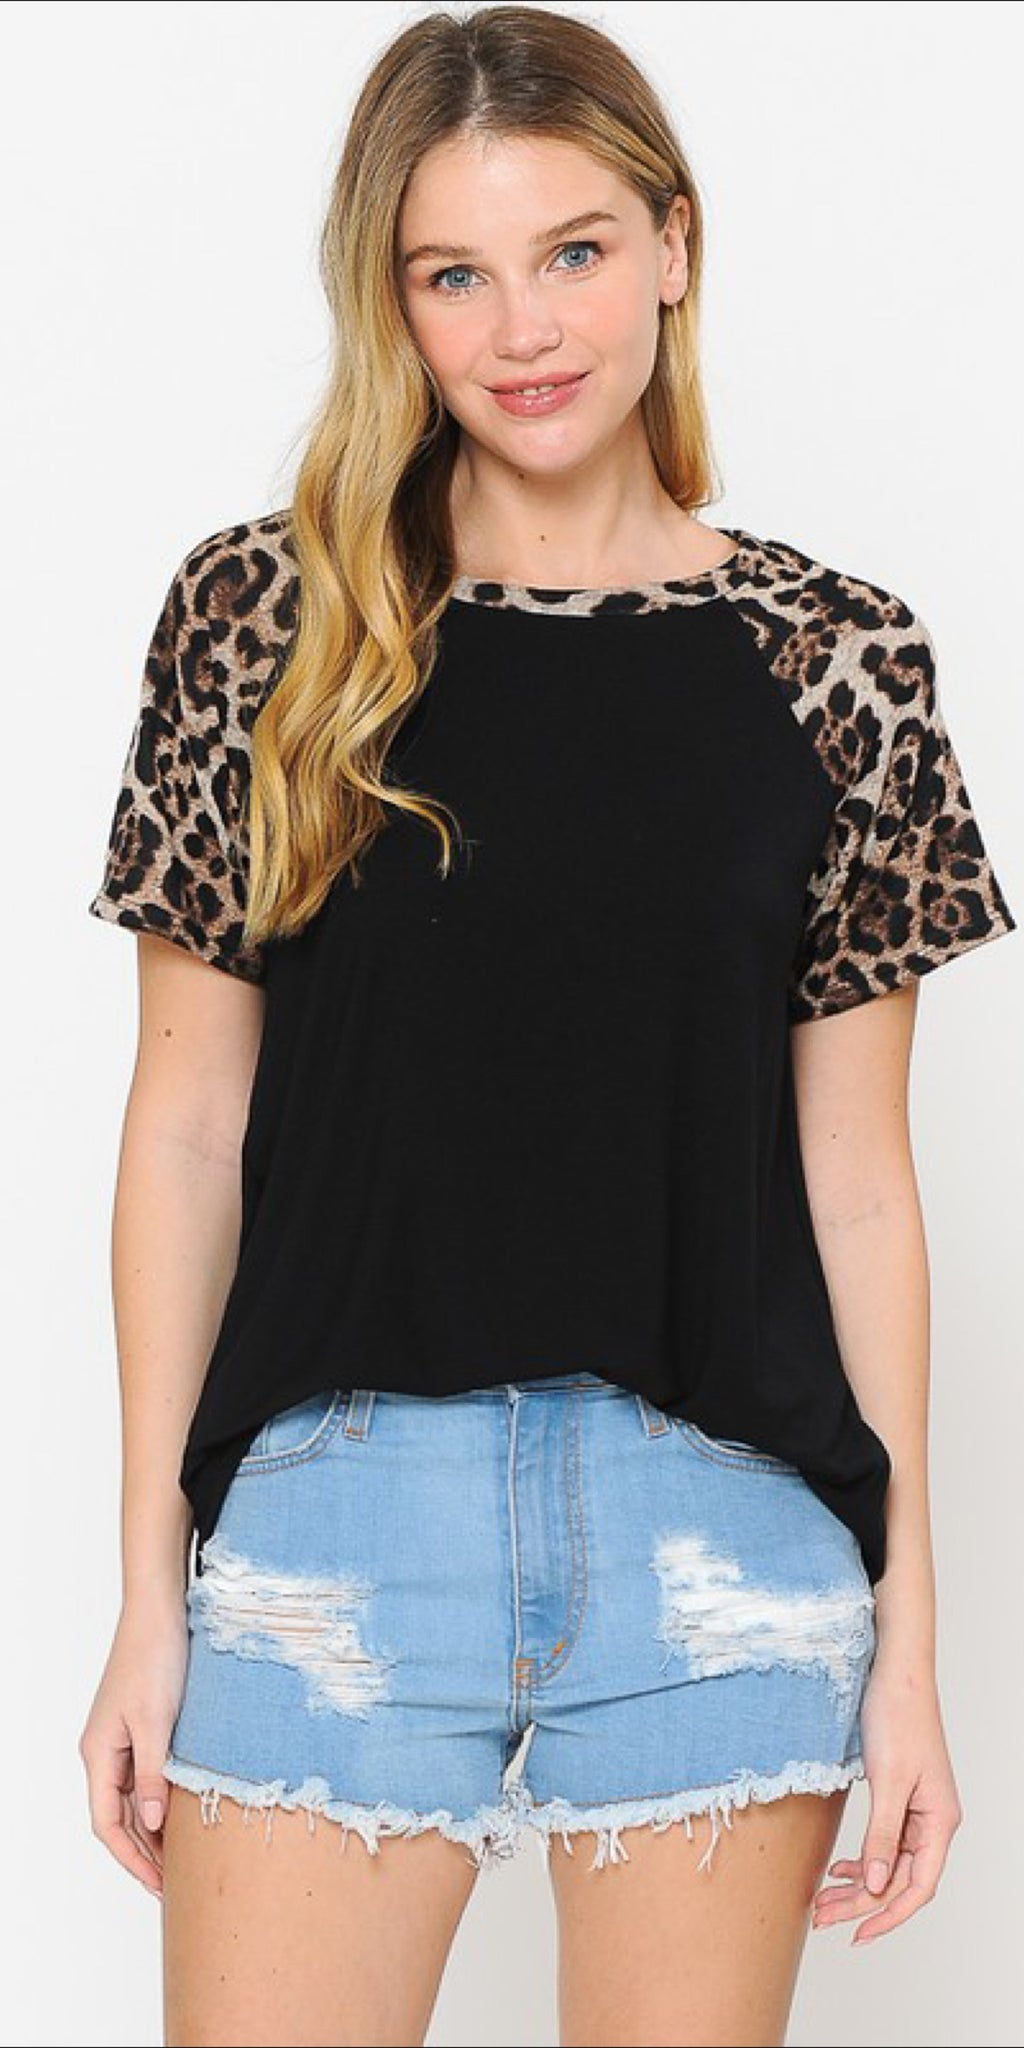 Lagoon Leopard Top - Also in Plus Size